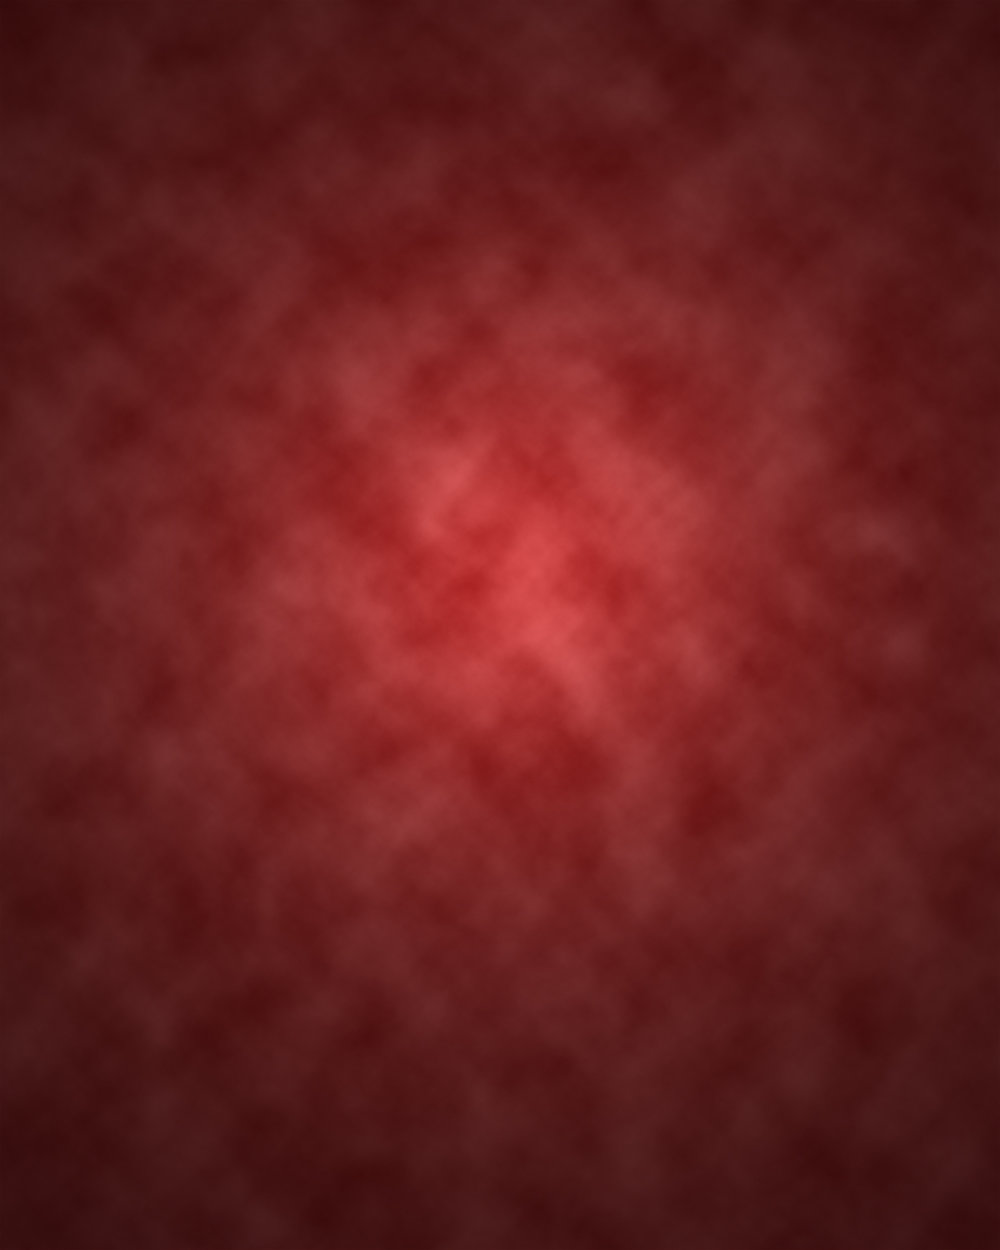 Background Option #7 - Red